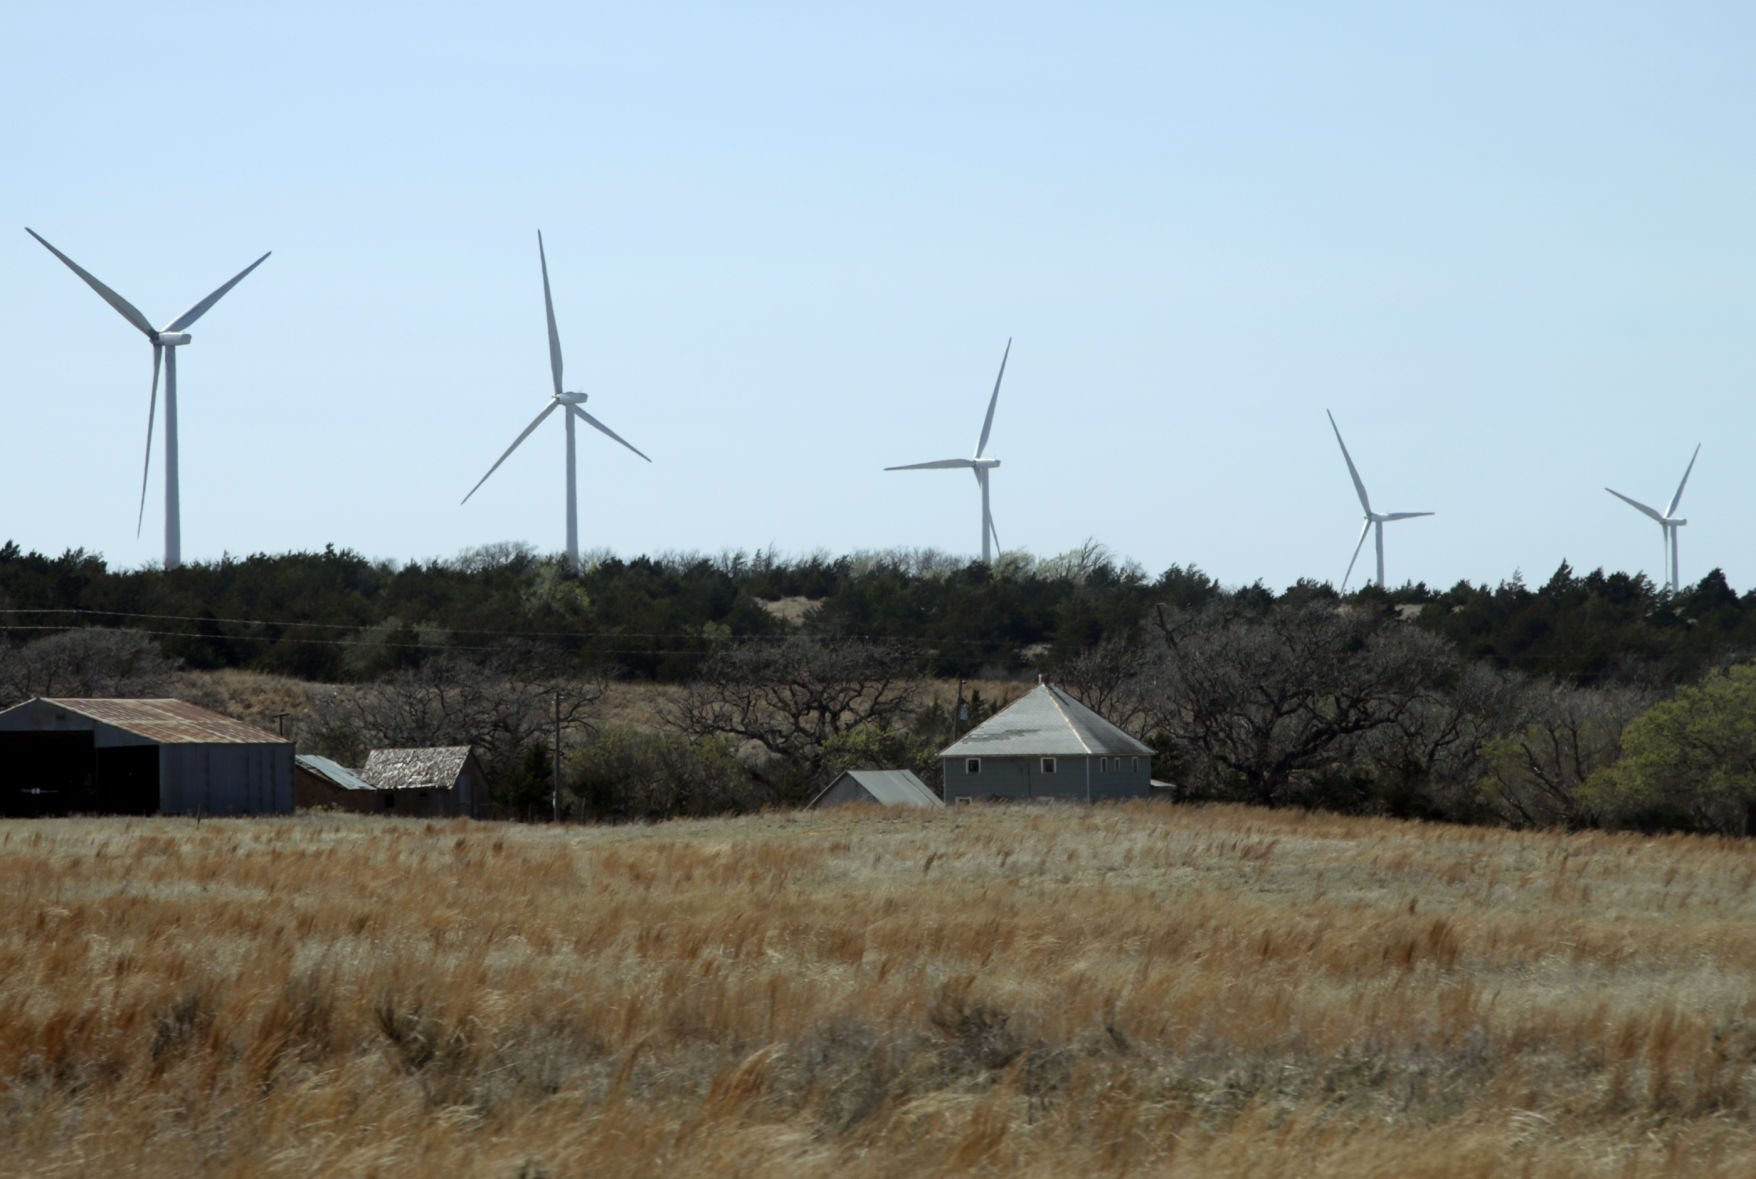 PSO: Nation's largest wind energy facility under construction in Oklahoma